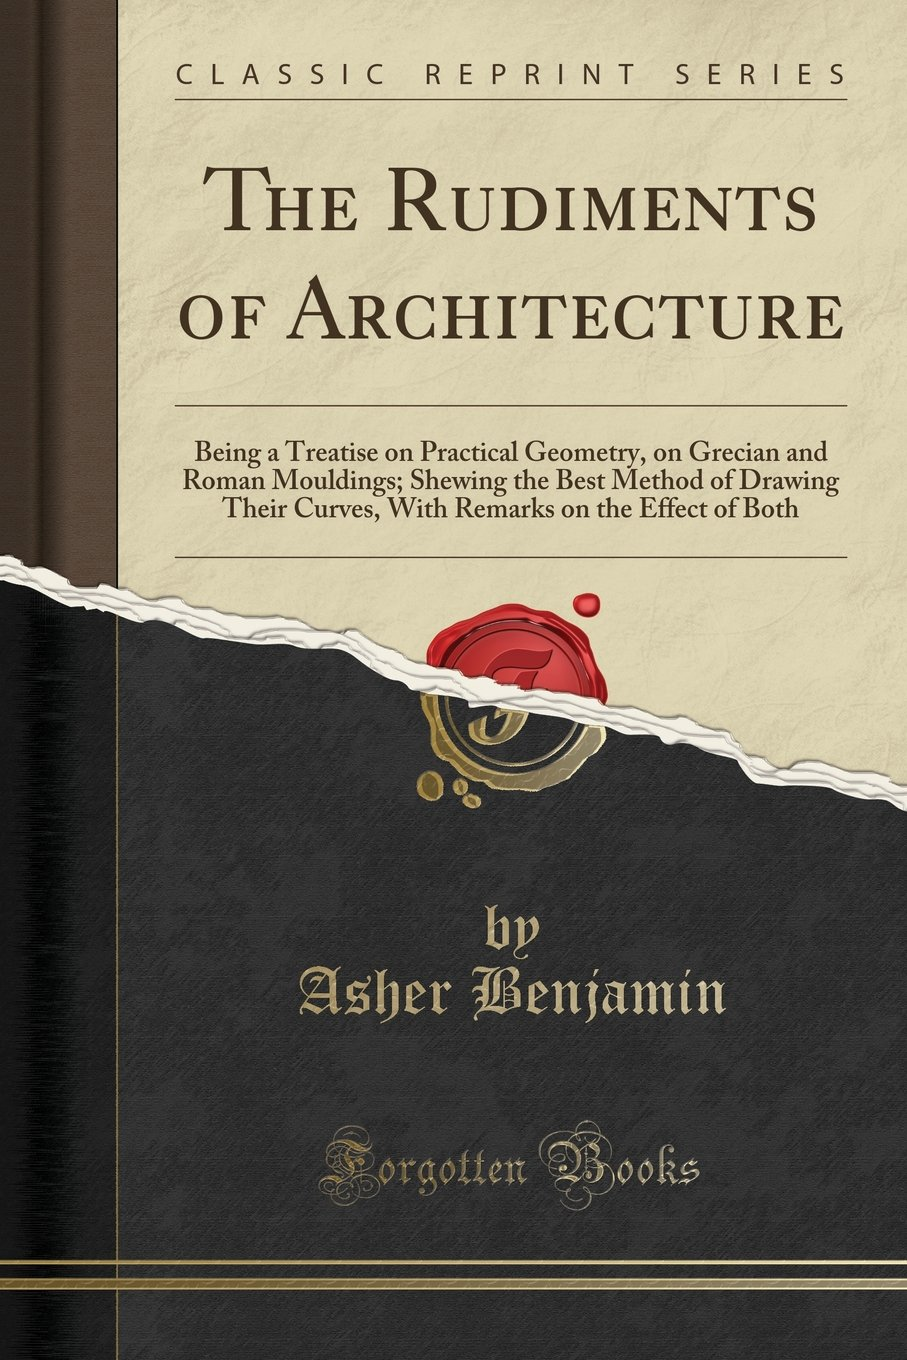 The Rudiments of Architecture: Being a Treatise on Practical Geometry, on Grecian and Roman Mouldings; Shewing the Best Method of Drawing Their on the Effect of Both (Classic Reprint)